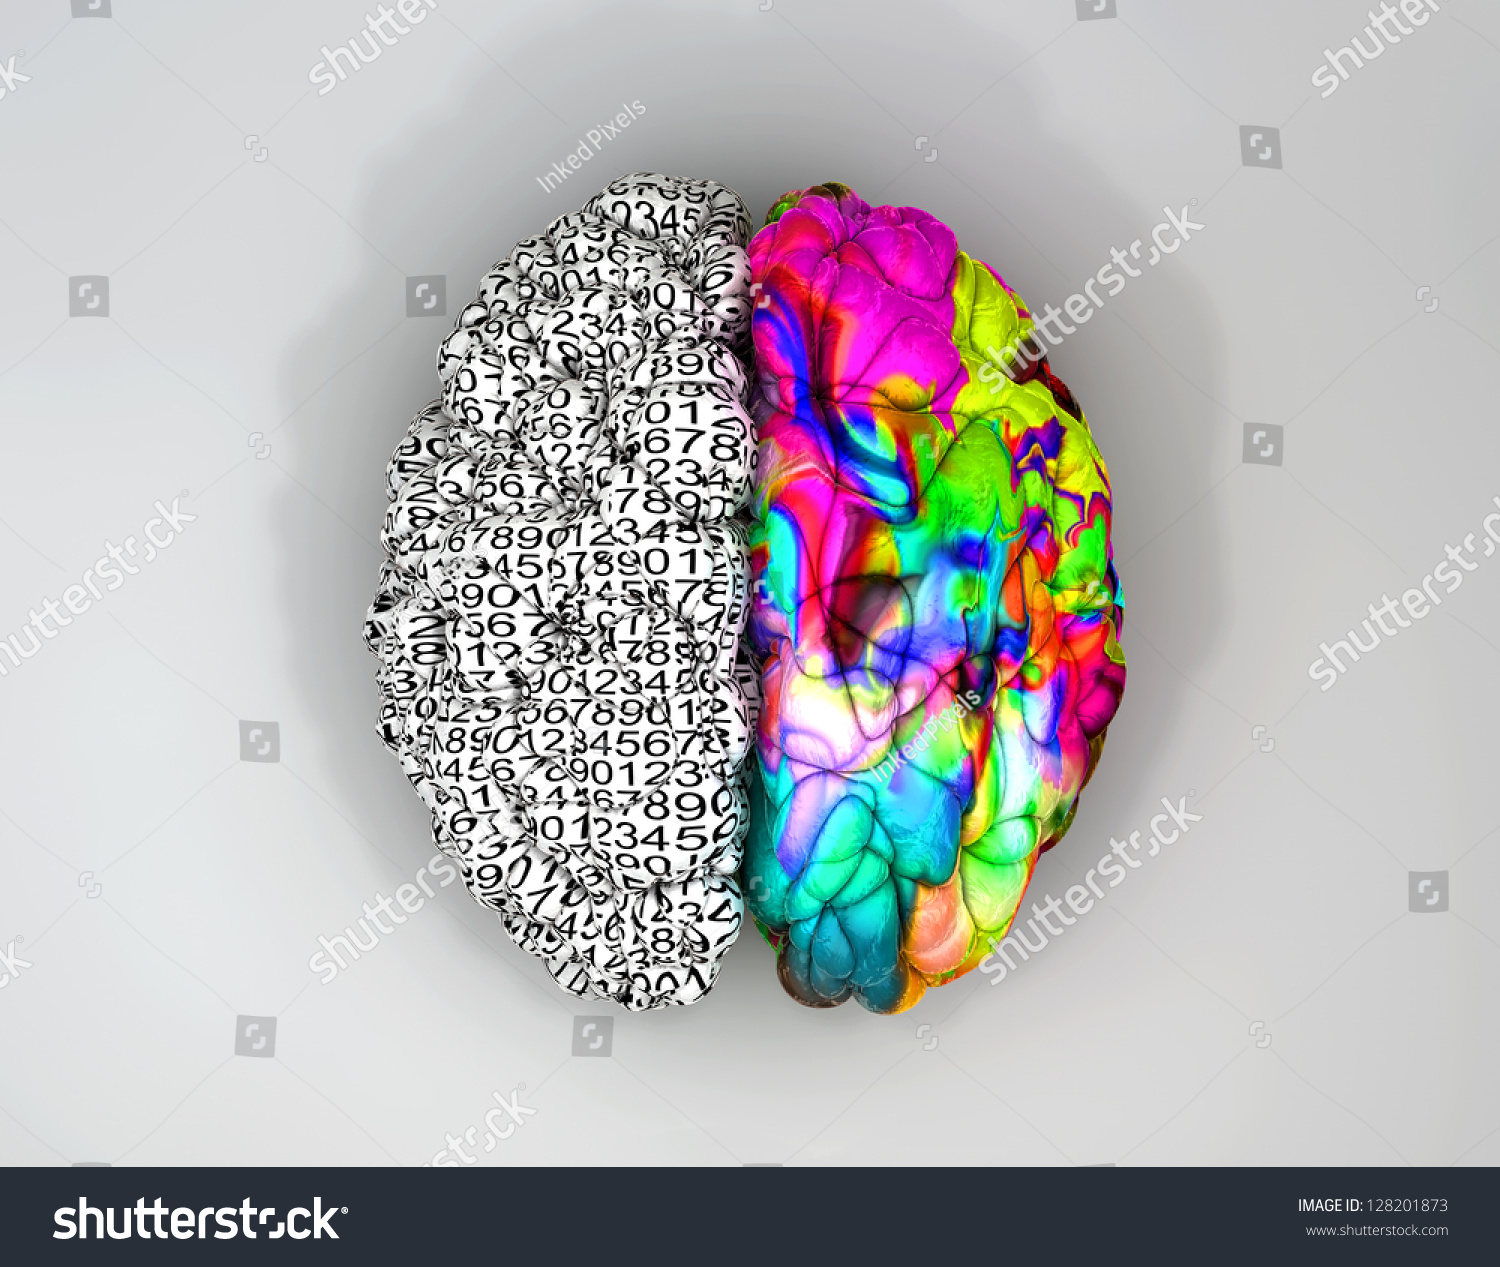 typical brain left side depicting analytical stock illustration a typical brain the left side depicting an analytical structured and logical mind